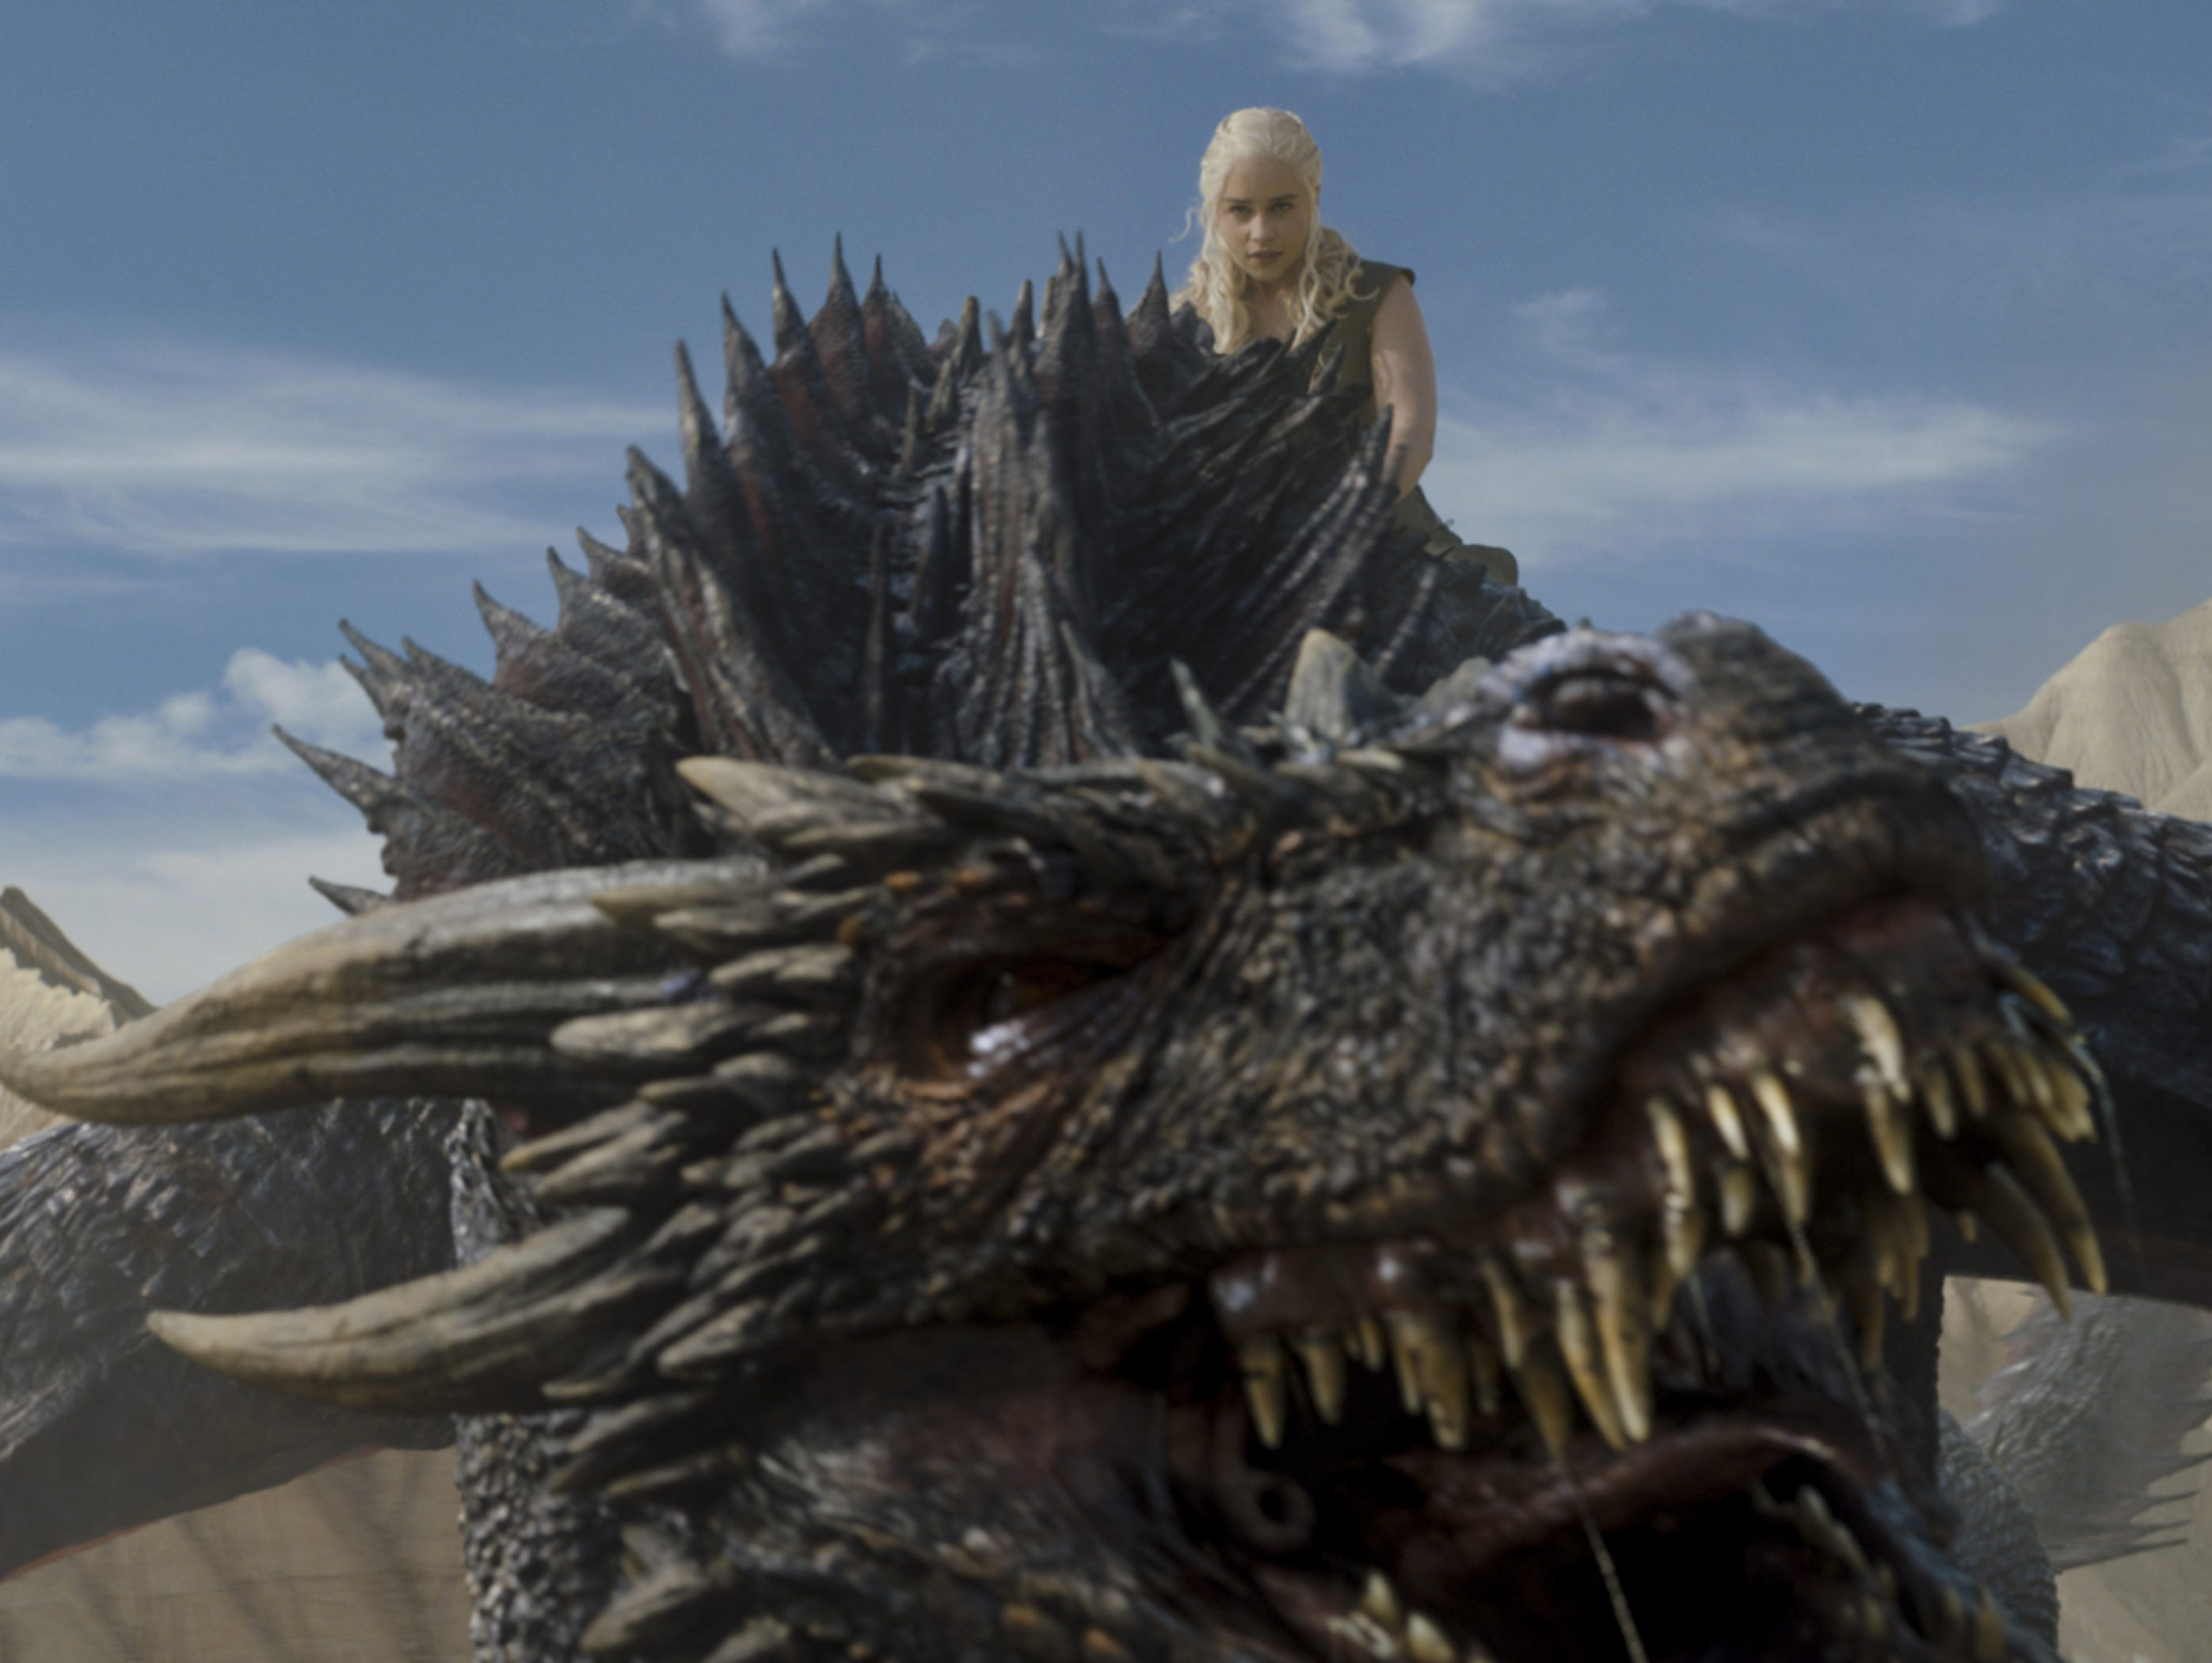 Game of Thrones Season 7 premieres July 16. Test your knowledge of GOT quotes!